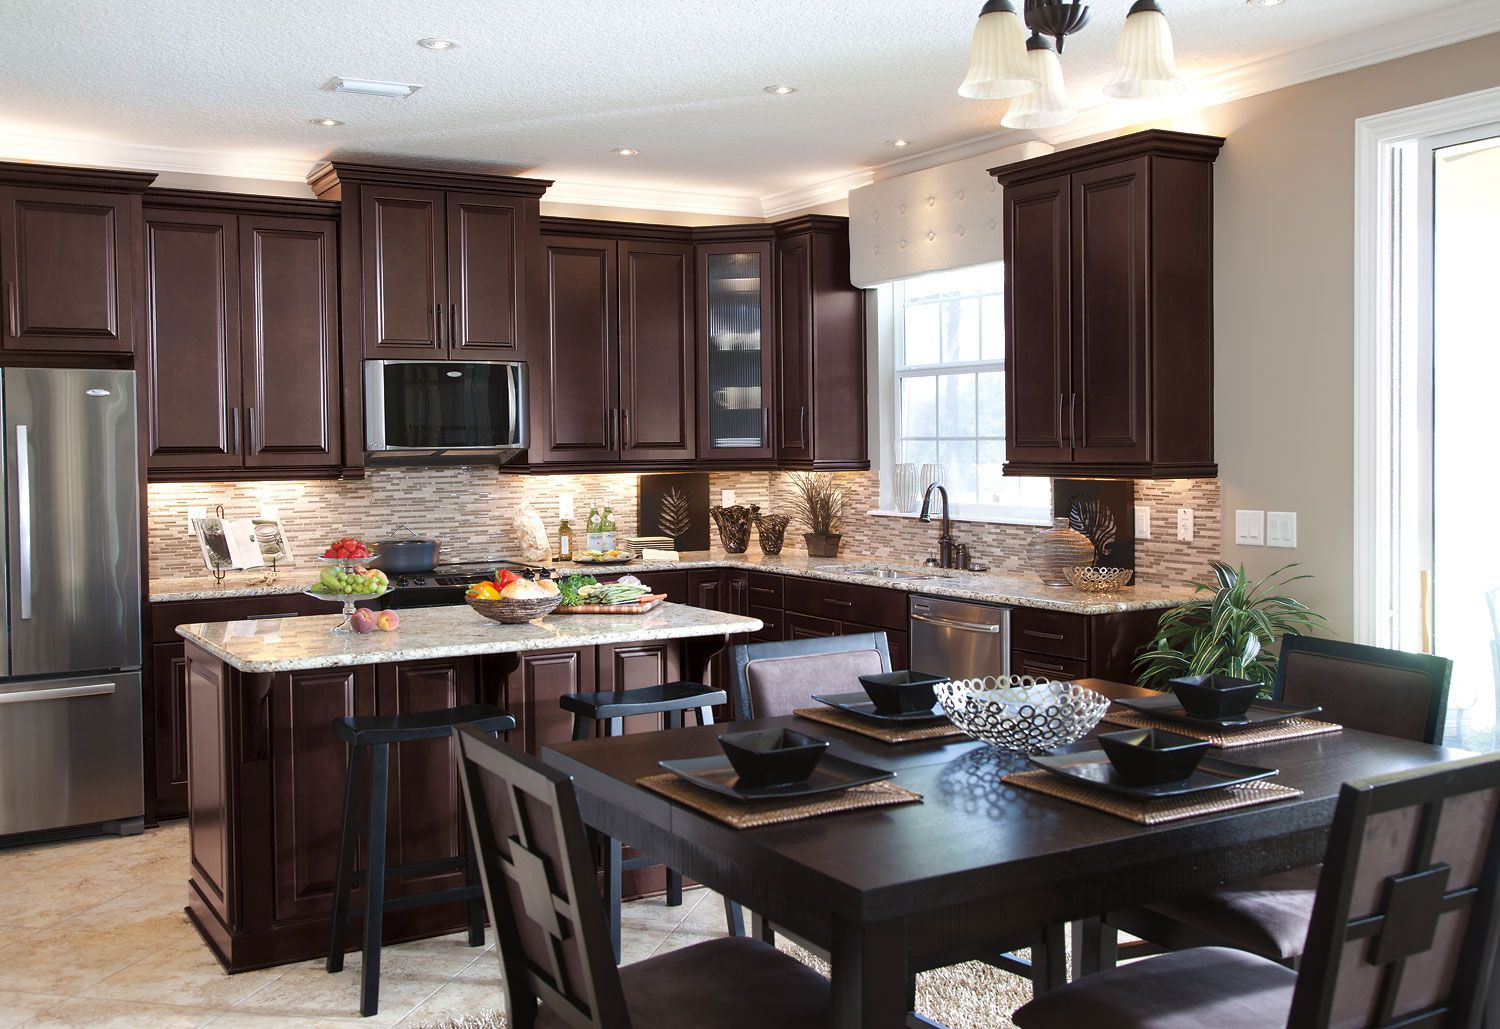 Kitchen cabinet crown molding designs - Timberlake Cabinets With Light Rail Lighting And Crown Molding Accent Interiors